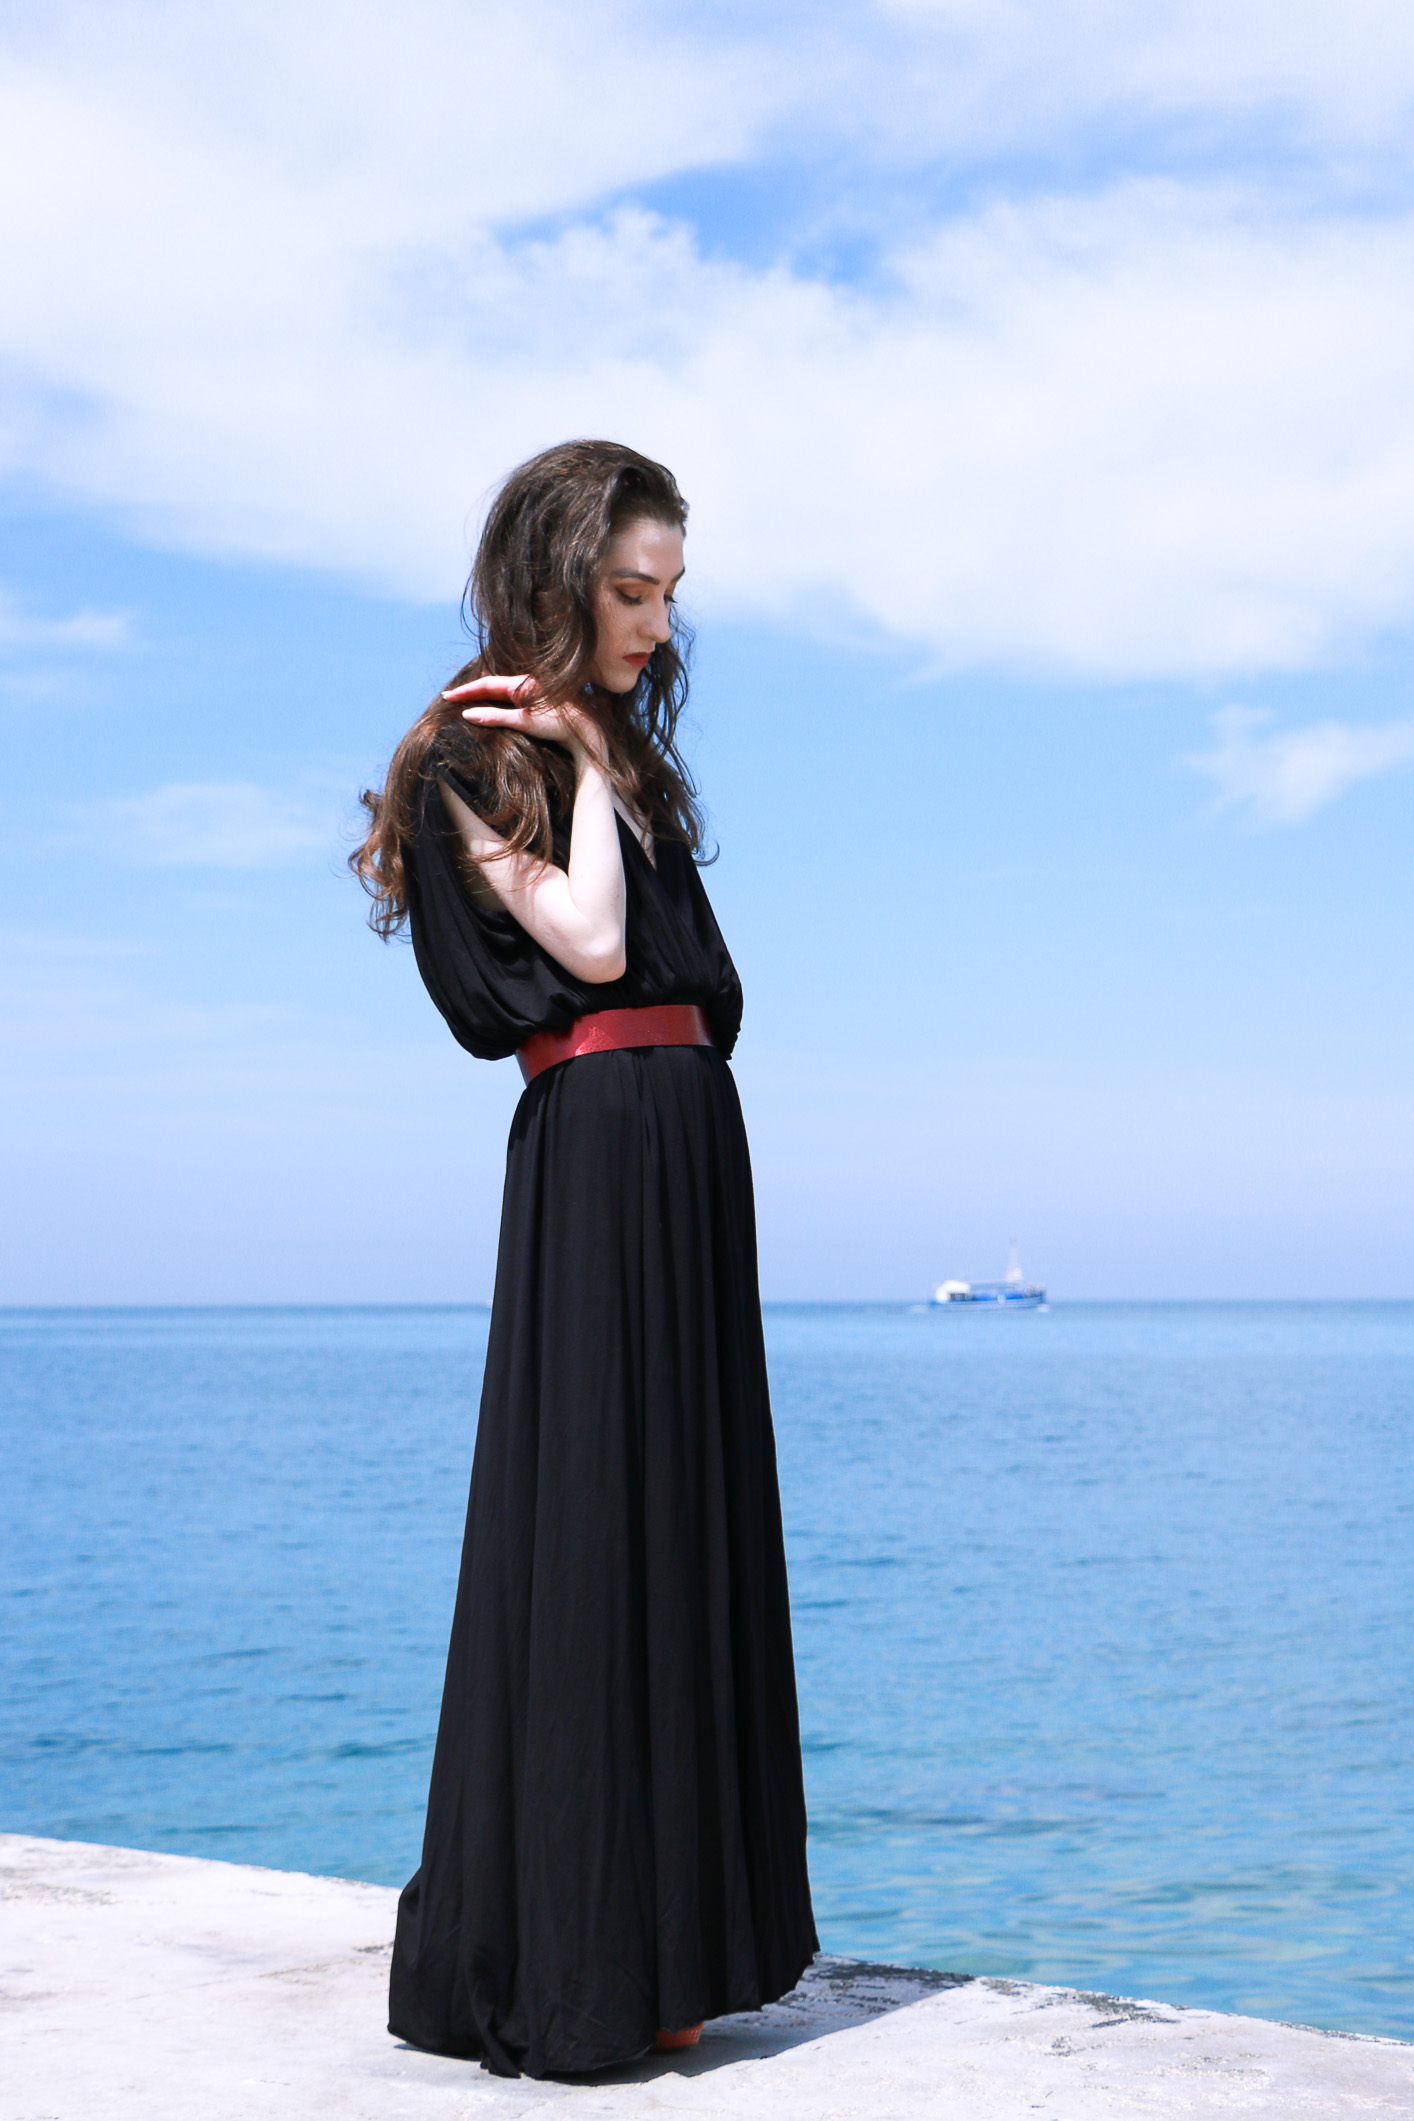 Fashion blogger Veronika Lipar of Brunette From Wall Street sharing the most beautiful prom dress to wear to gala events this season